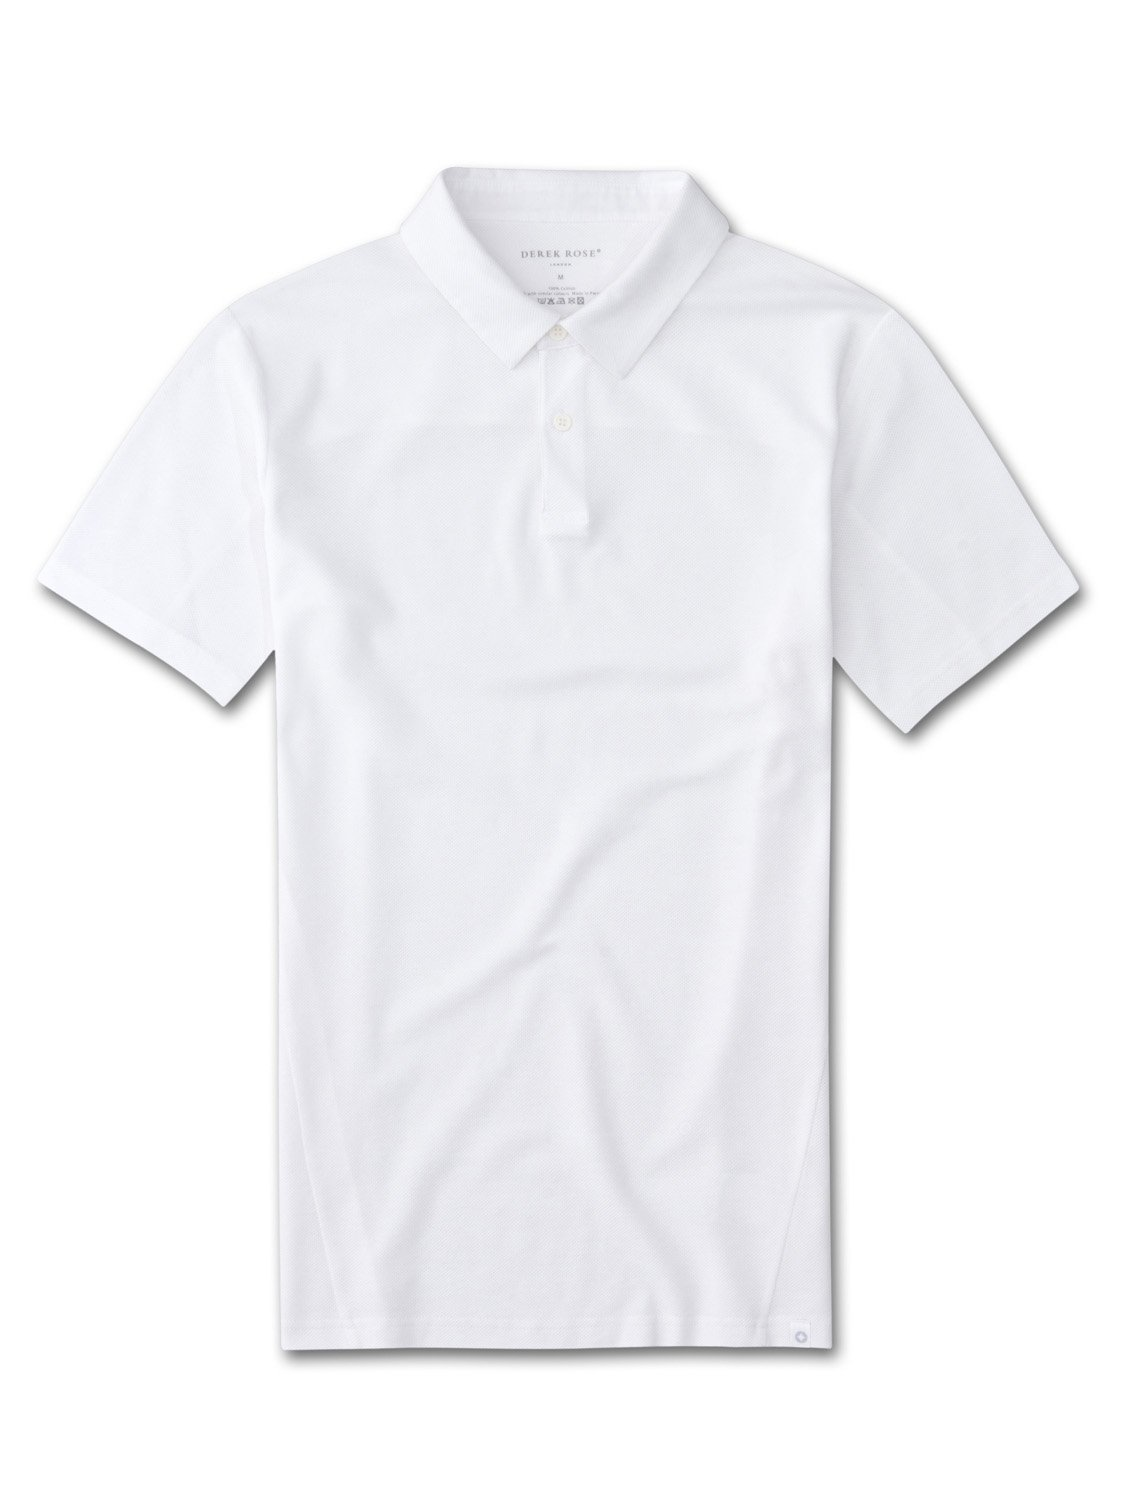 Men's Short Sleeve Polo Shirt Roland 2 Pique Cotton White